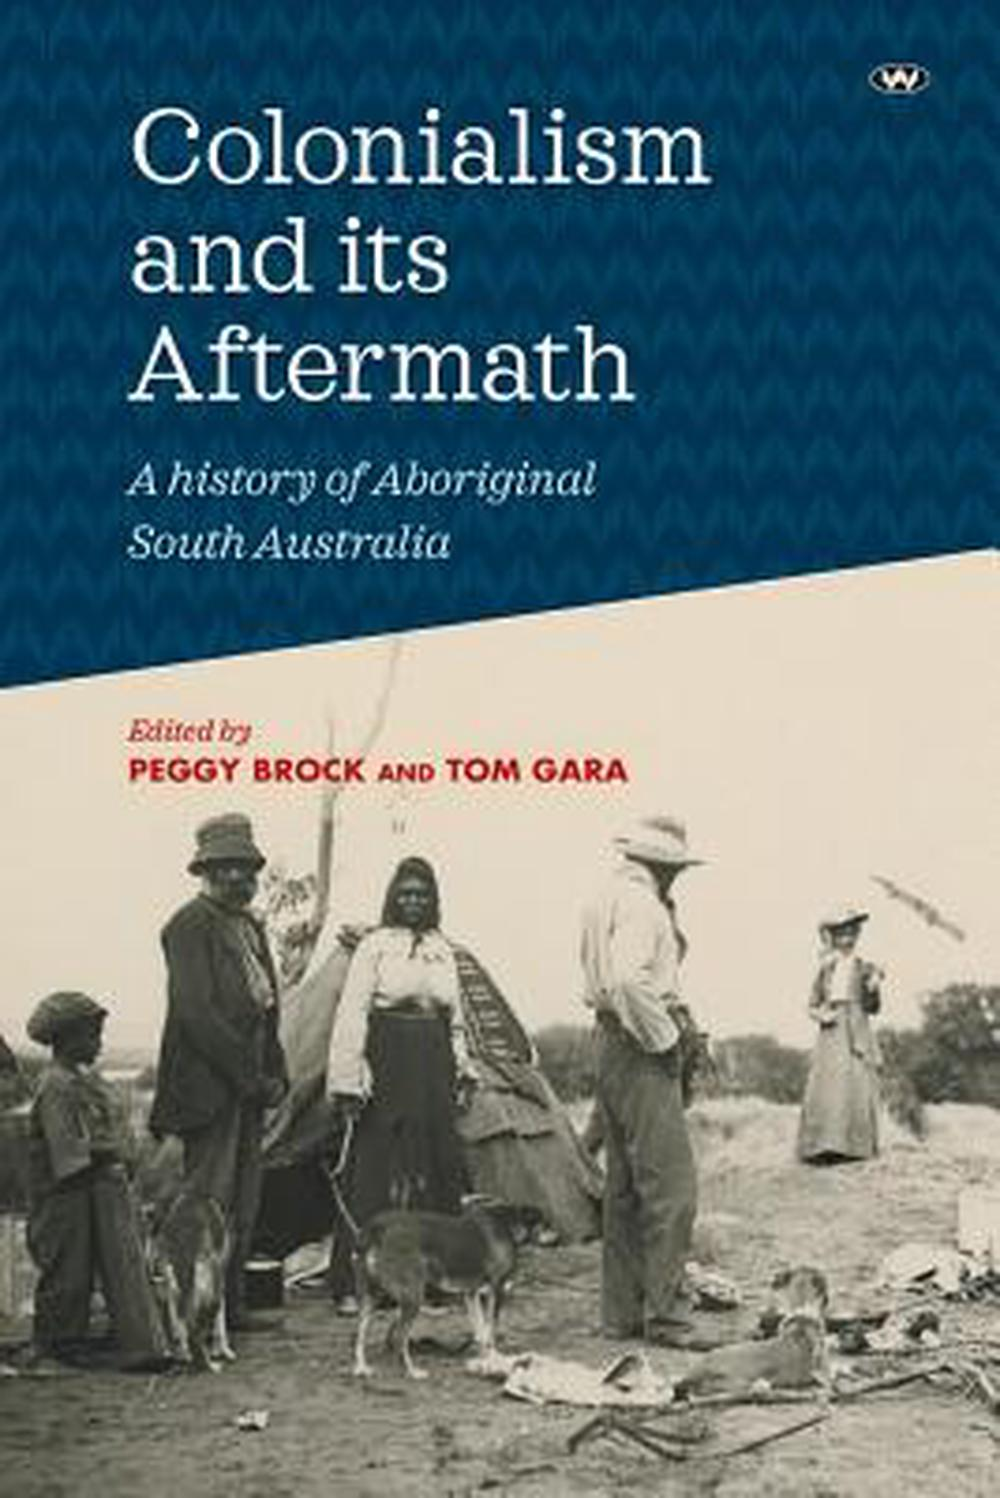 Colonialism and its AftermathA history of Aboriginal South Australia